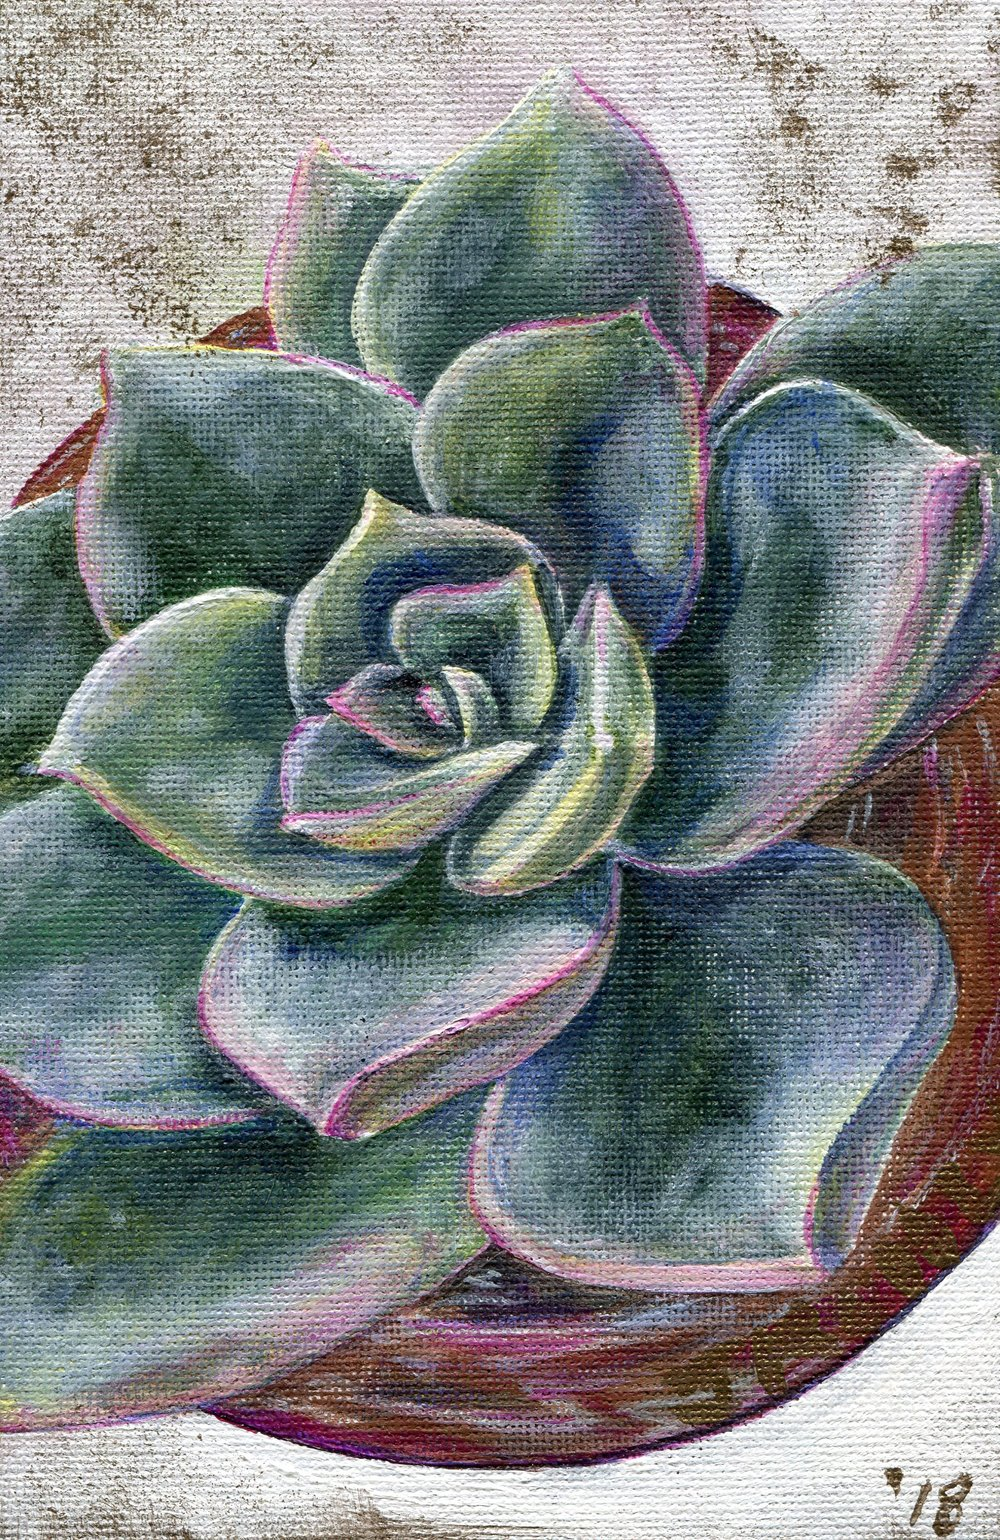 67a  Janeen Kohly  Echeveria I  acrylic on canvas